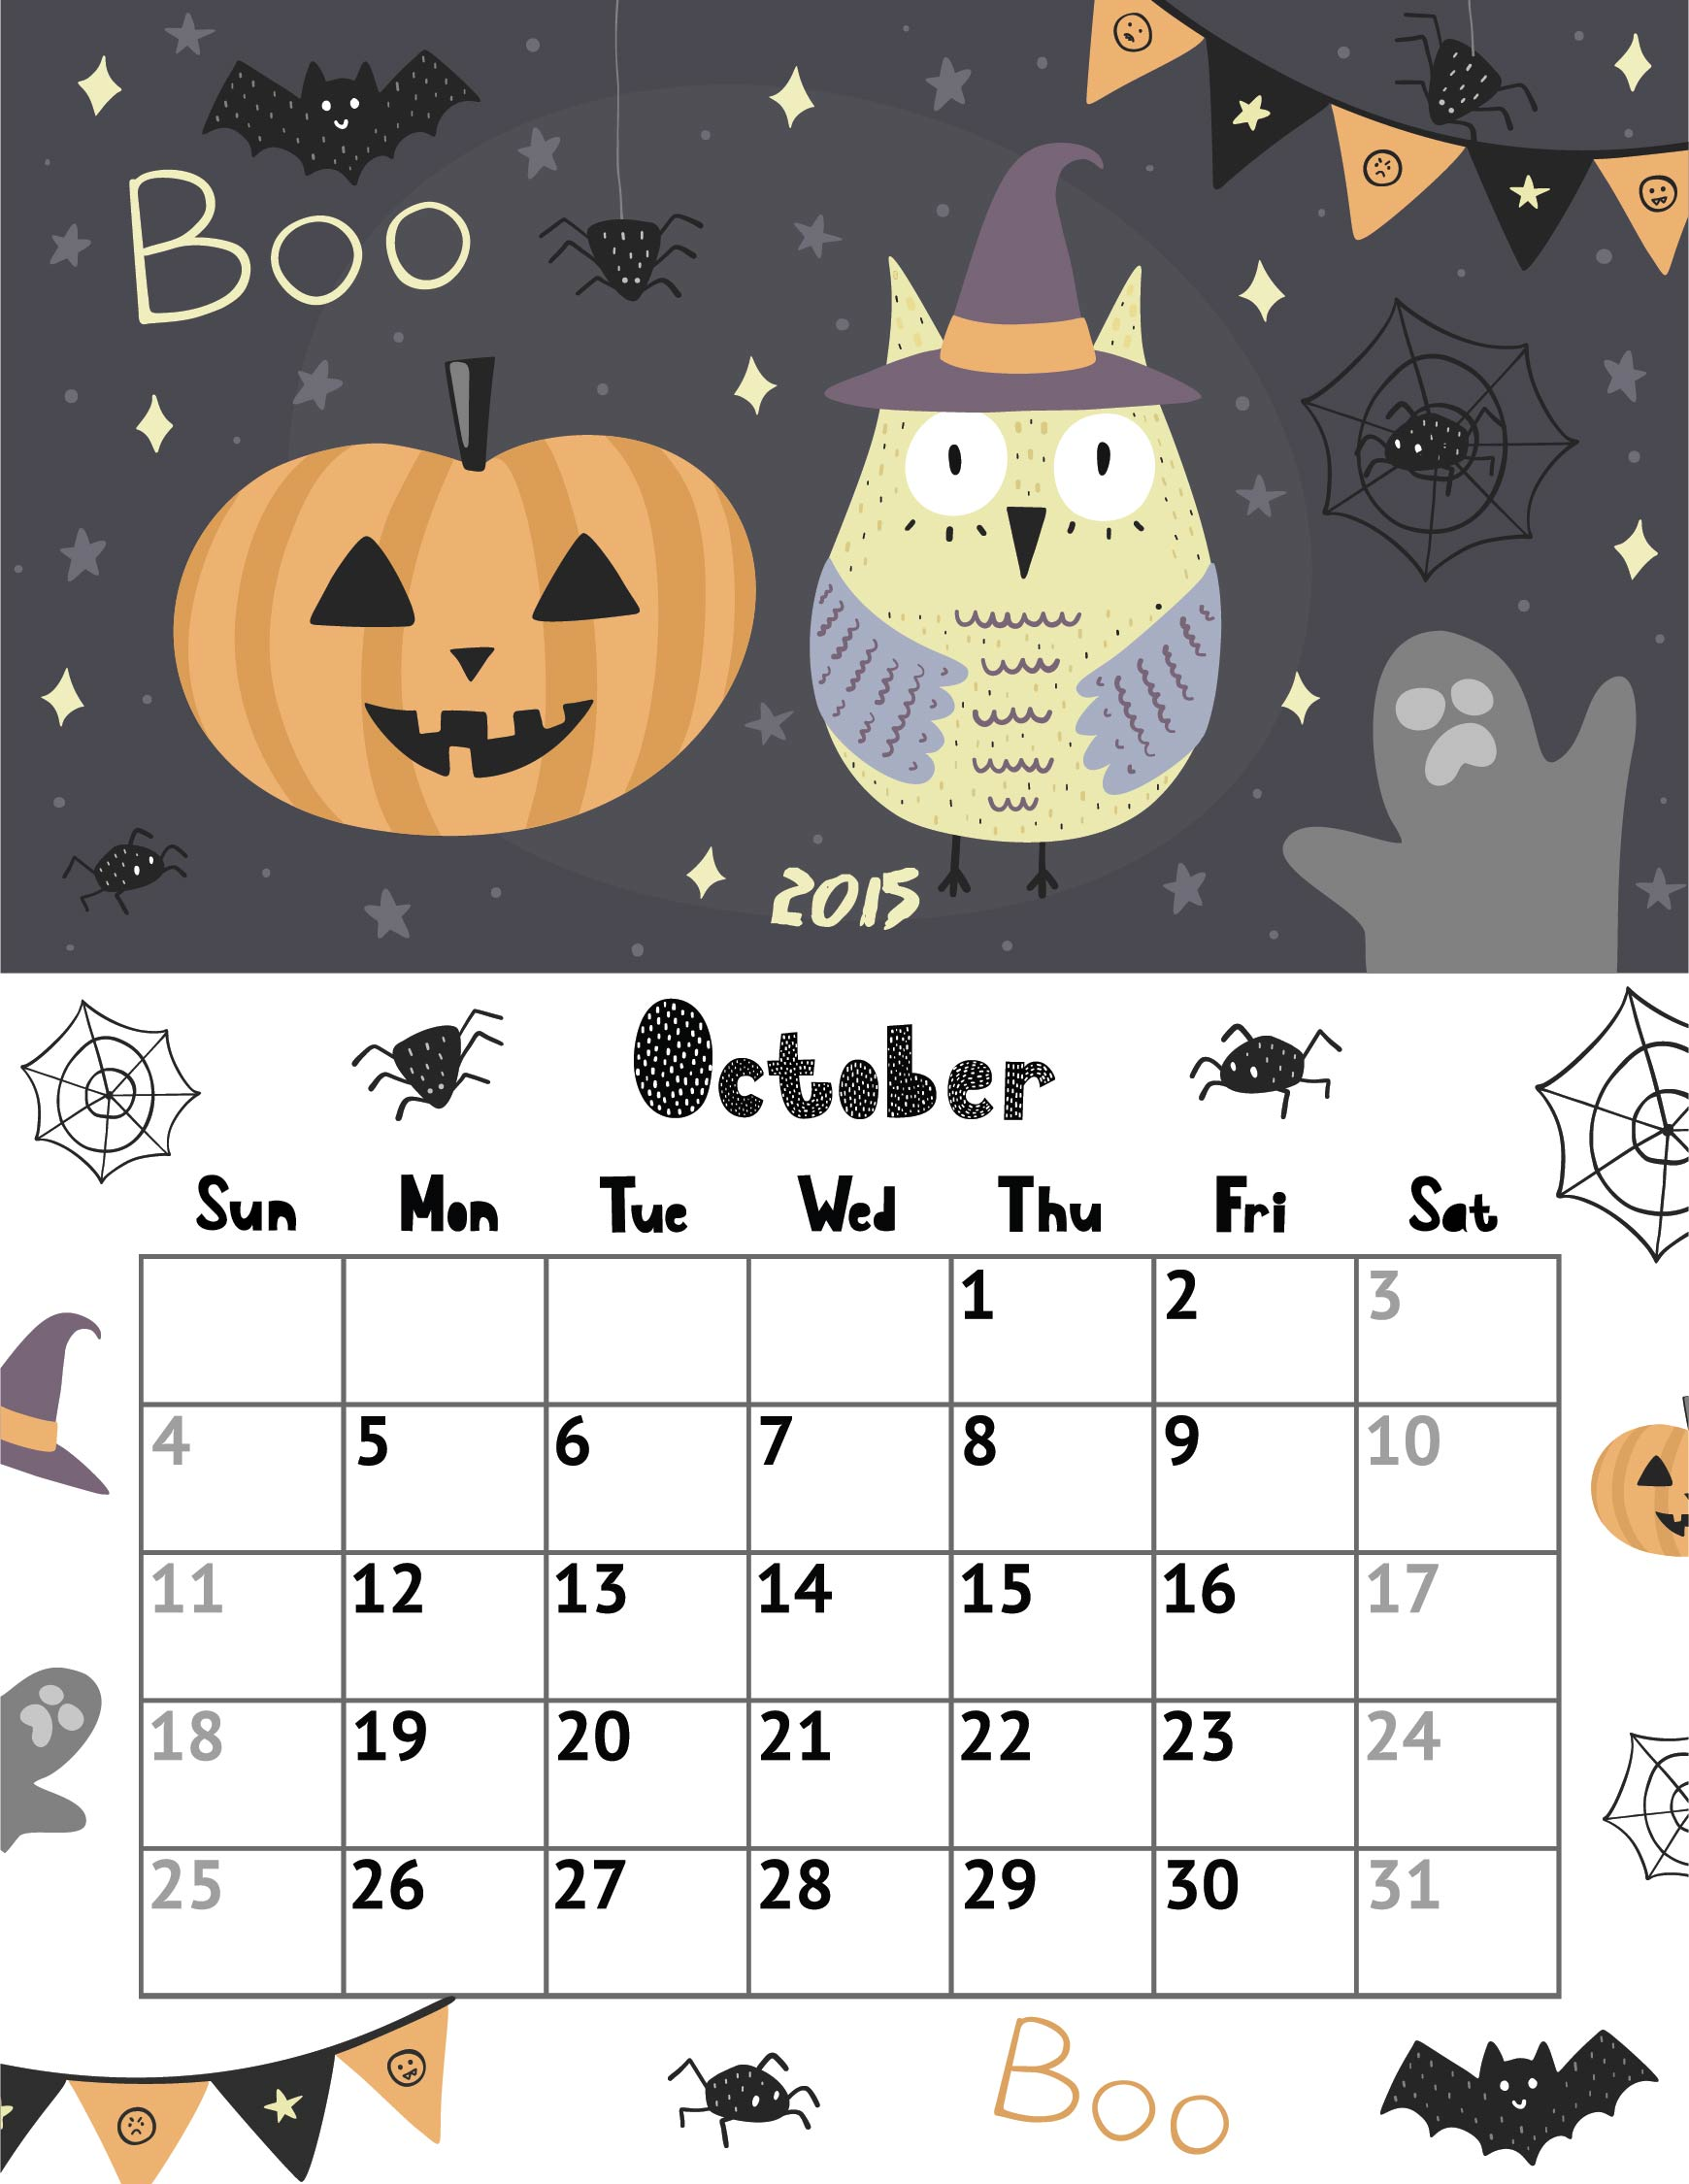 Halloween October 2015 Calendar Printable